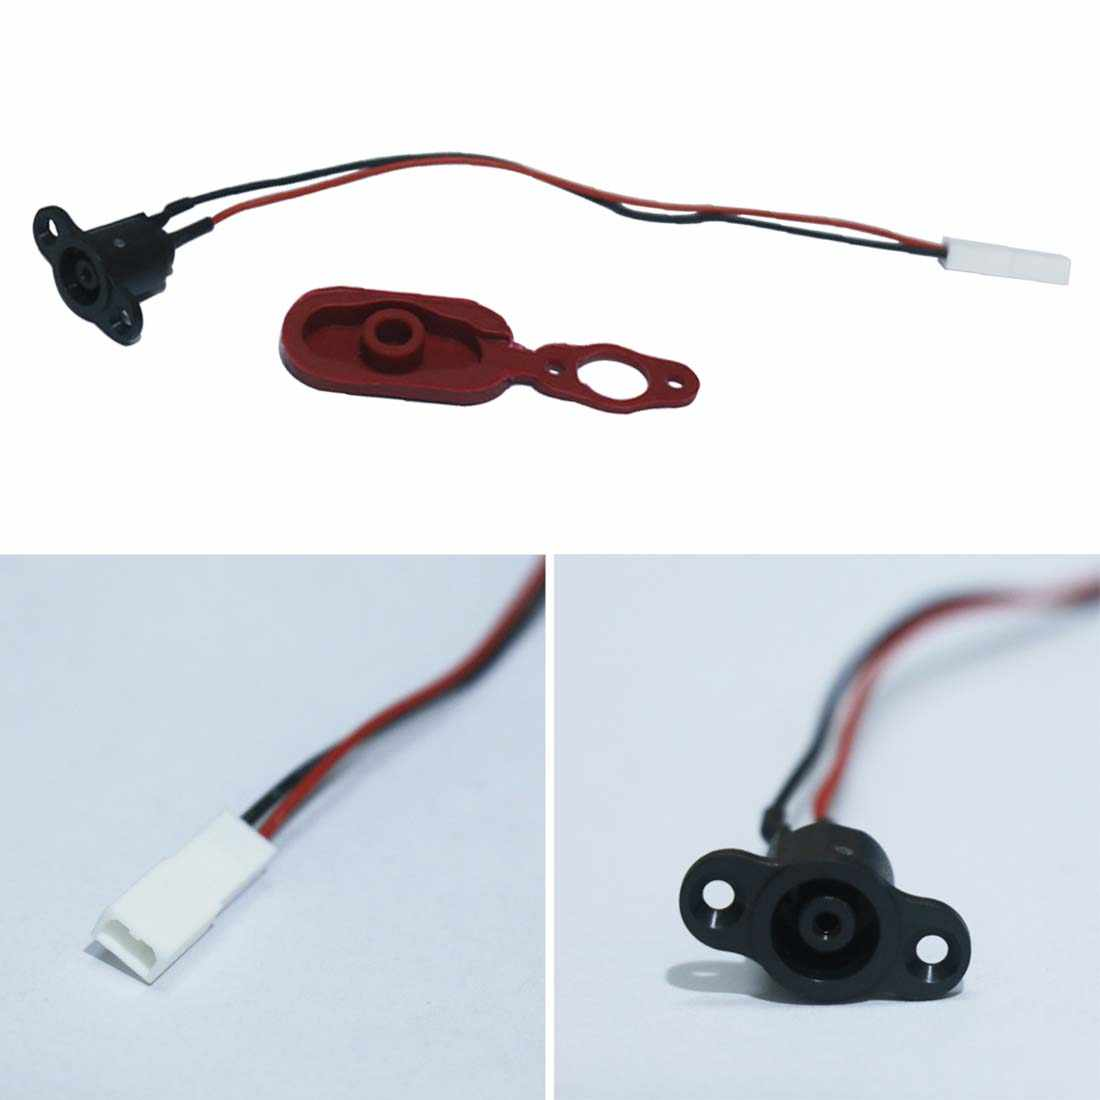 New Skateboard Replacement Battery Power Charger Line Hole Rubber Plug Silicone Cap for XIAOMI Mijia M365 Electric Scooter